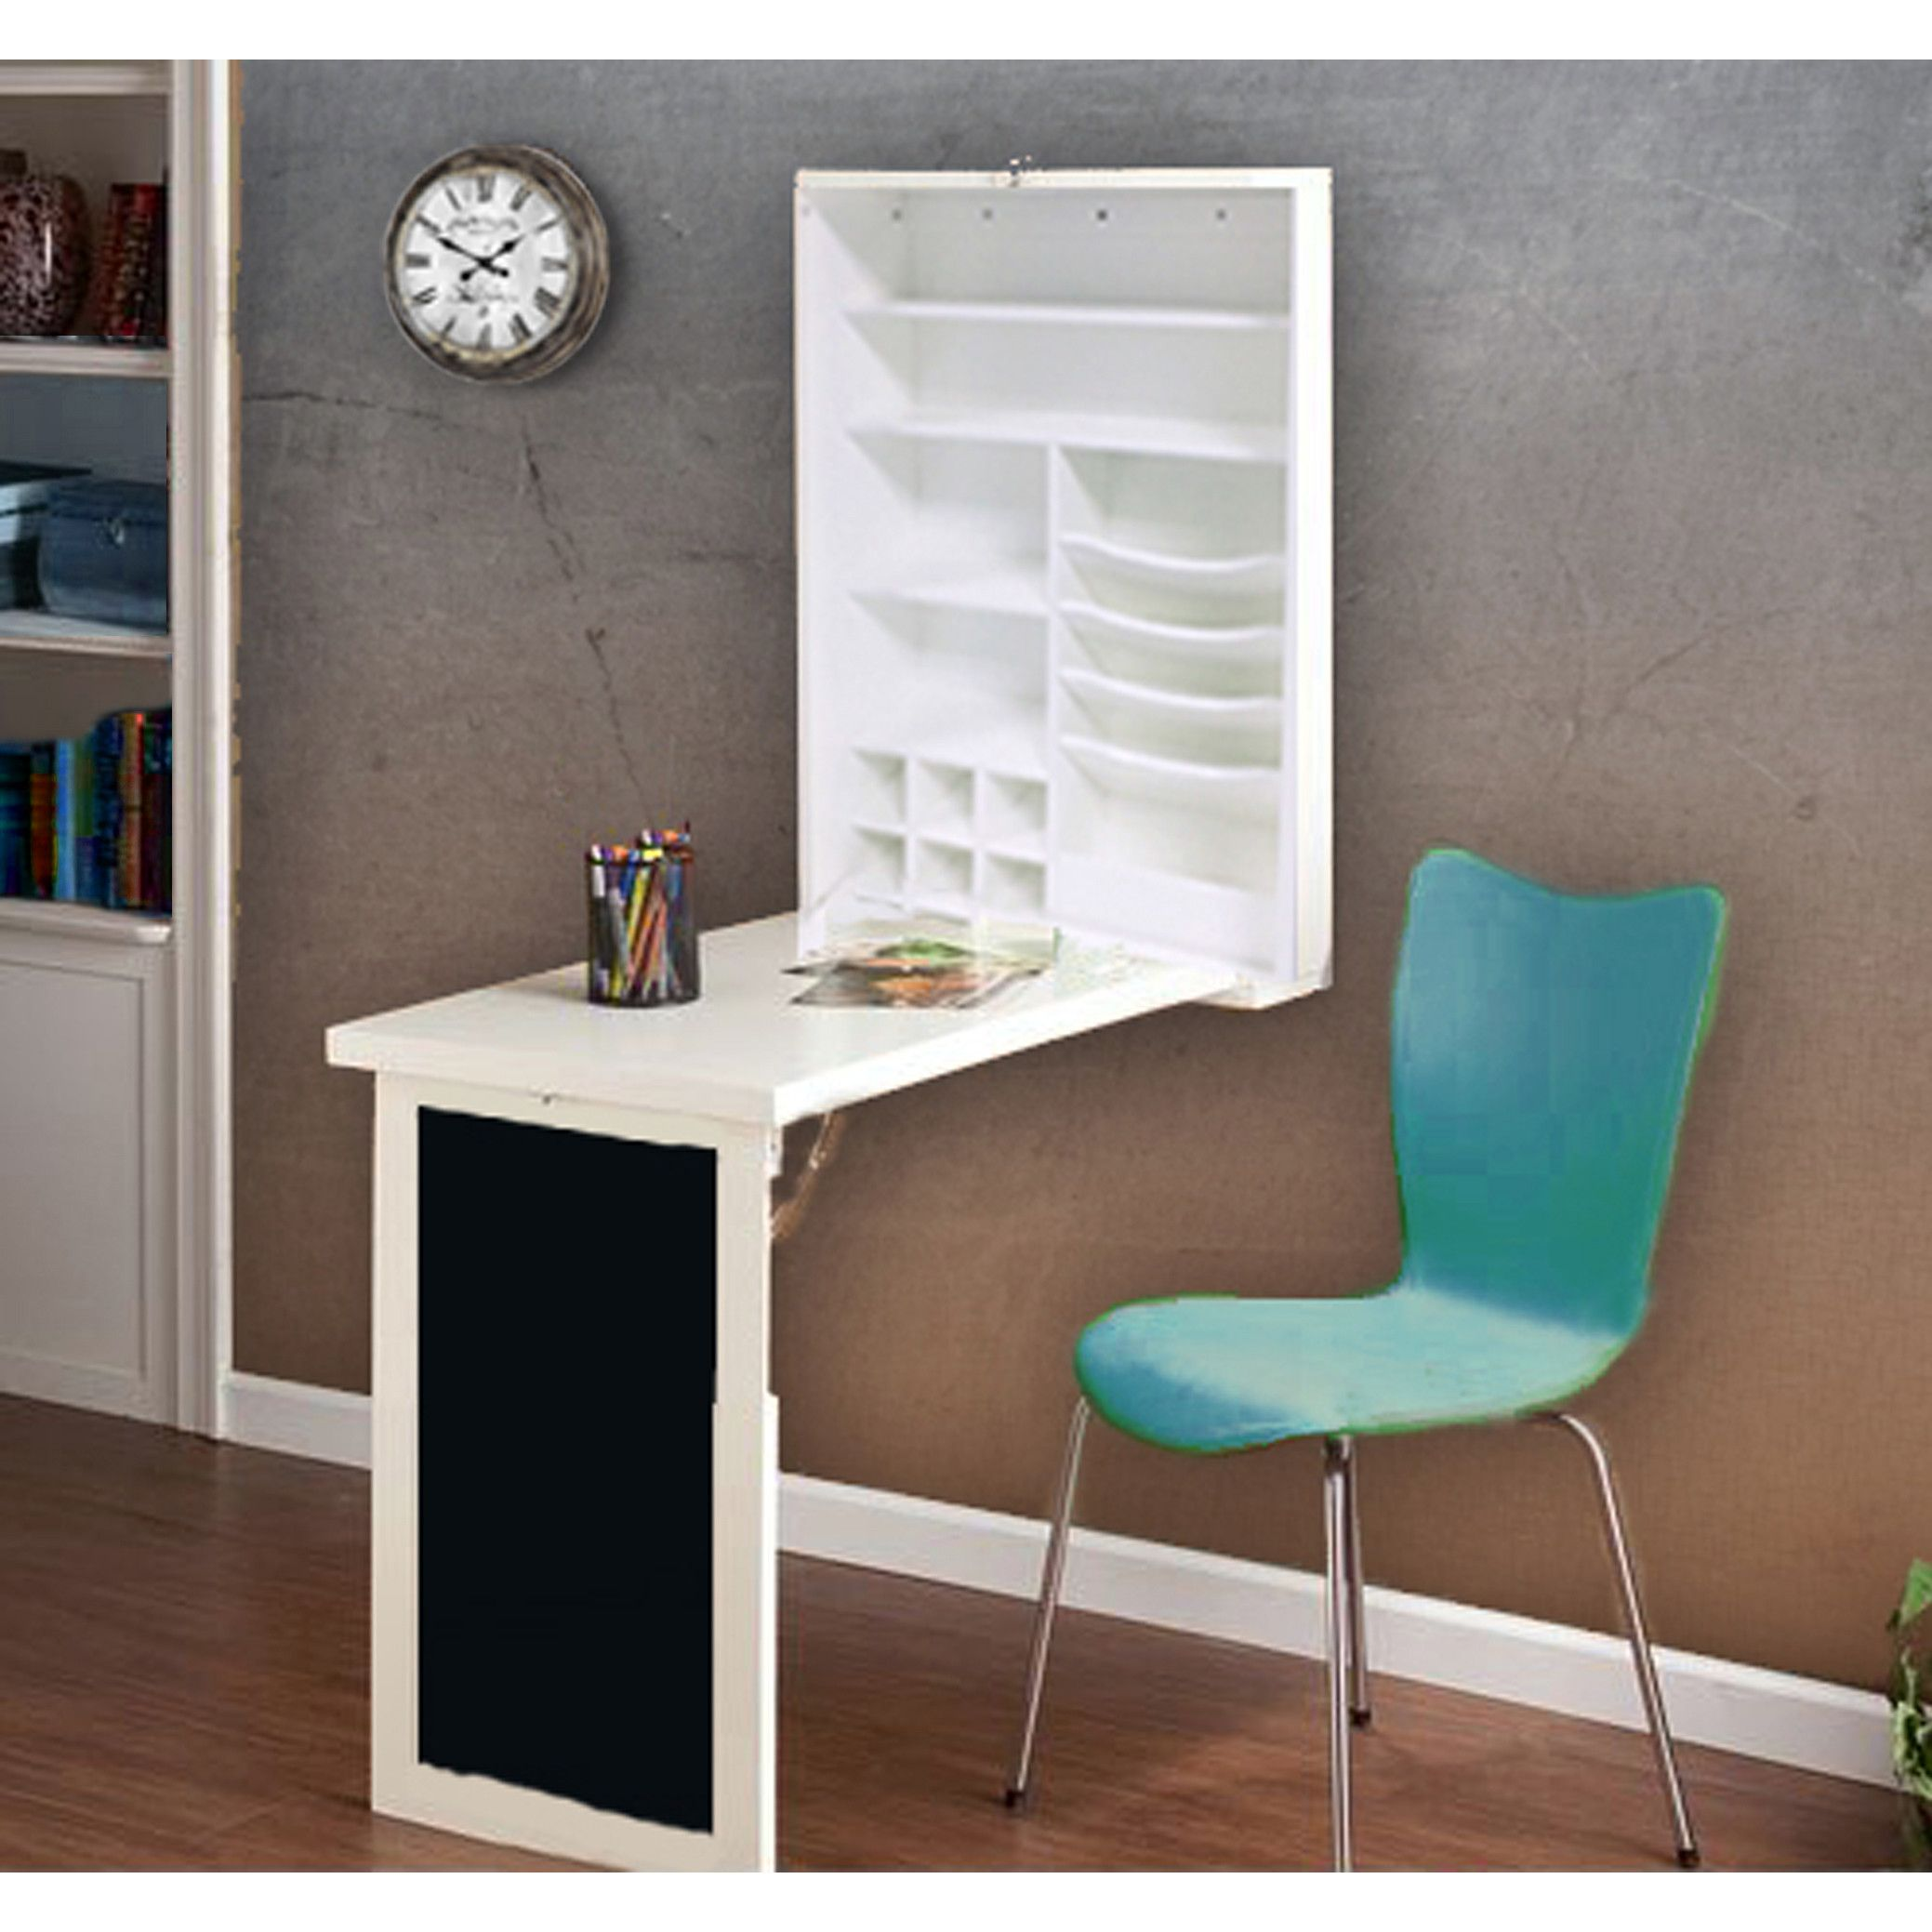 ideas home in with decoration and desk shipping receiving small creative